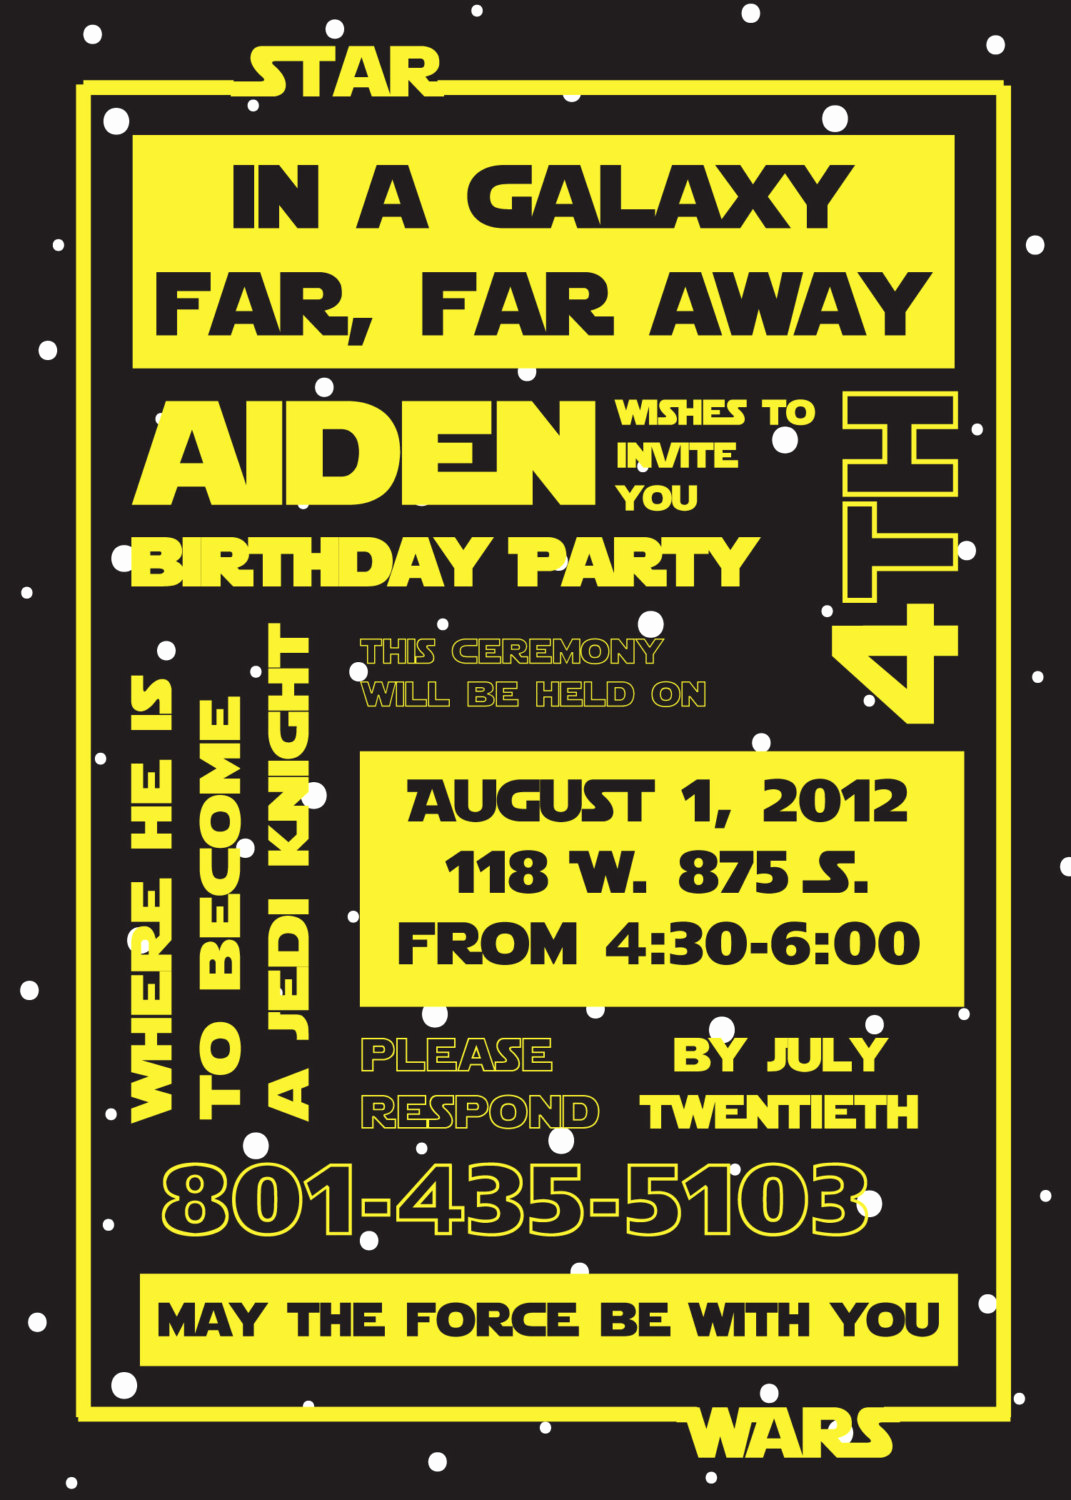 Star Wars Birthday Invitation Beautiful Free Star Wars Invitation Templates